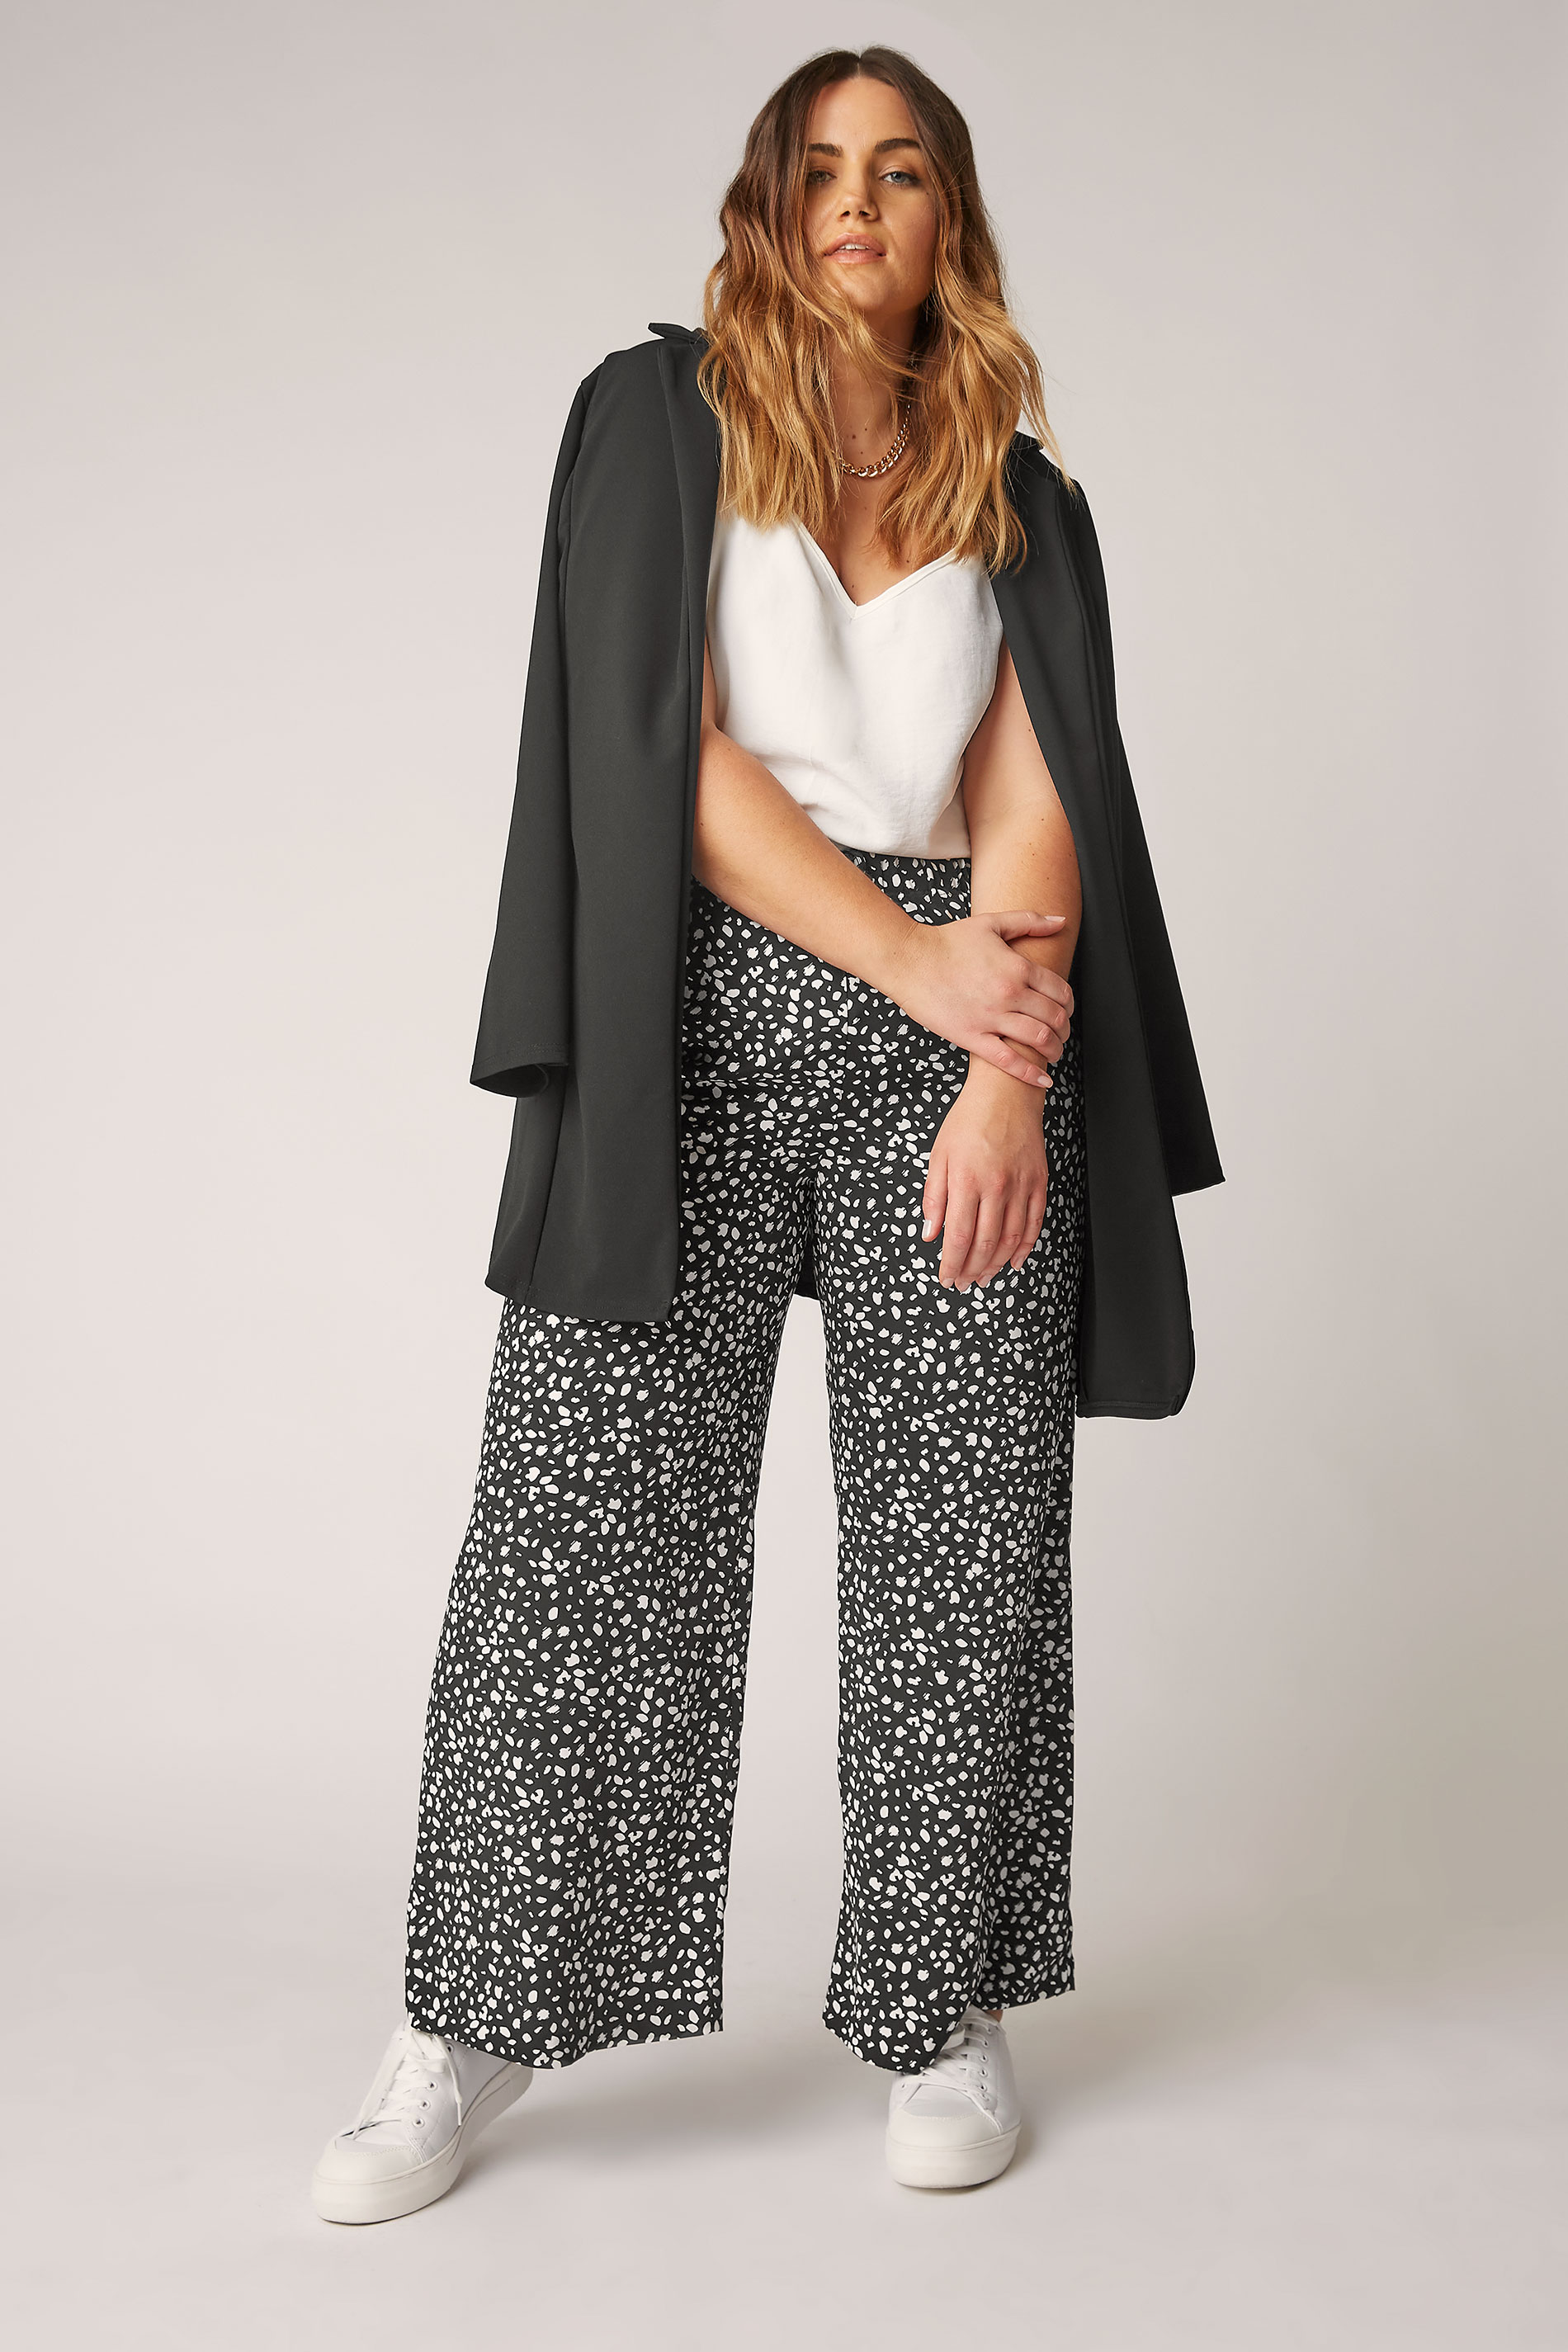 THE LIMITED EDIT Black Speckled Print Wide Leg Trousers_A.jpg